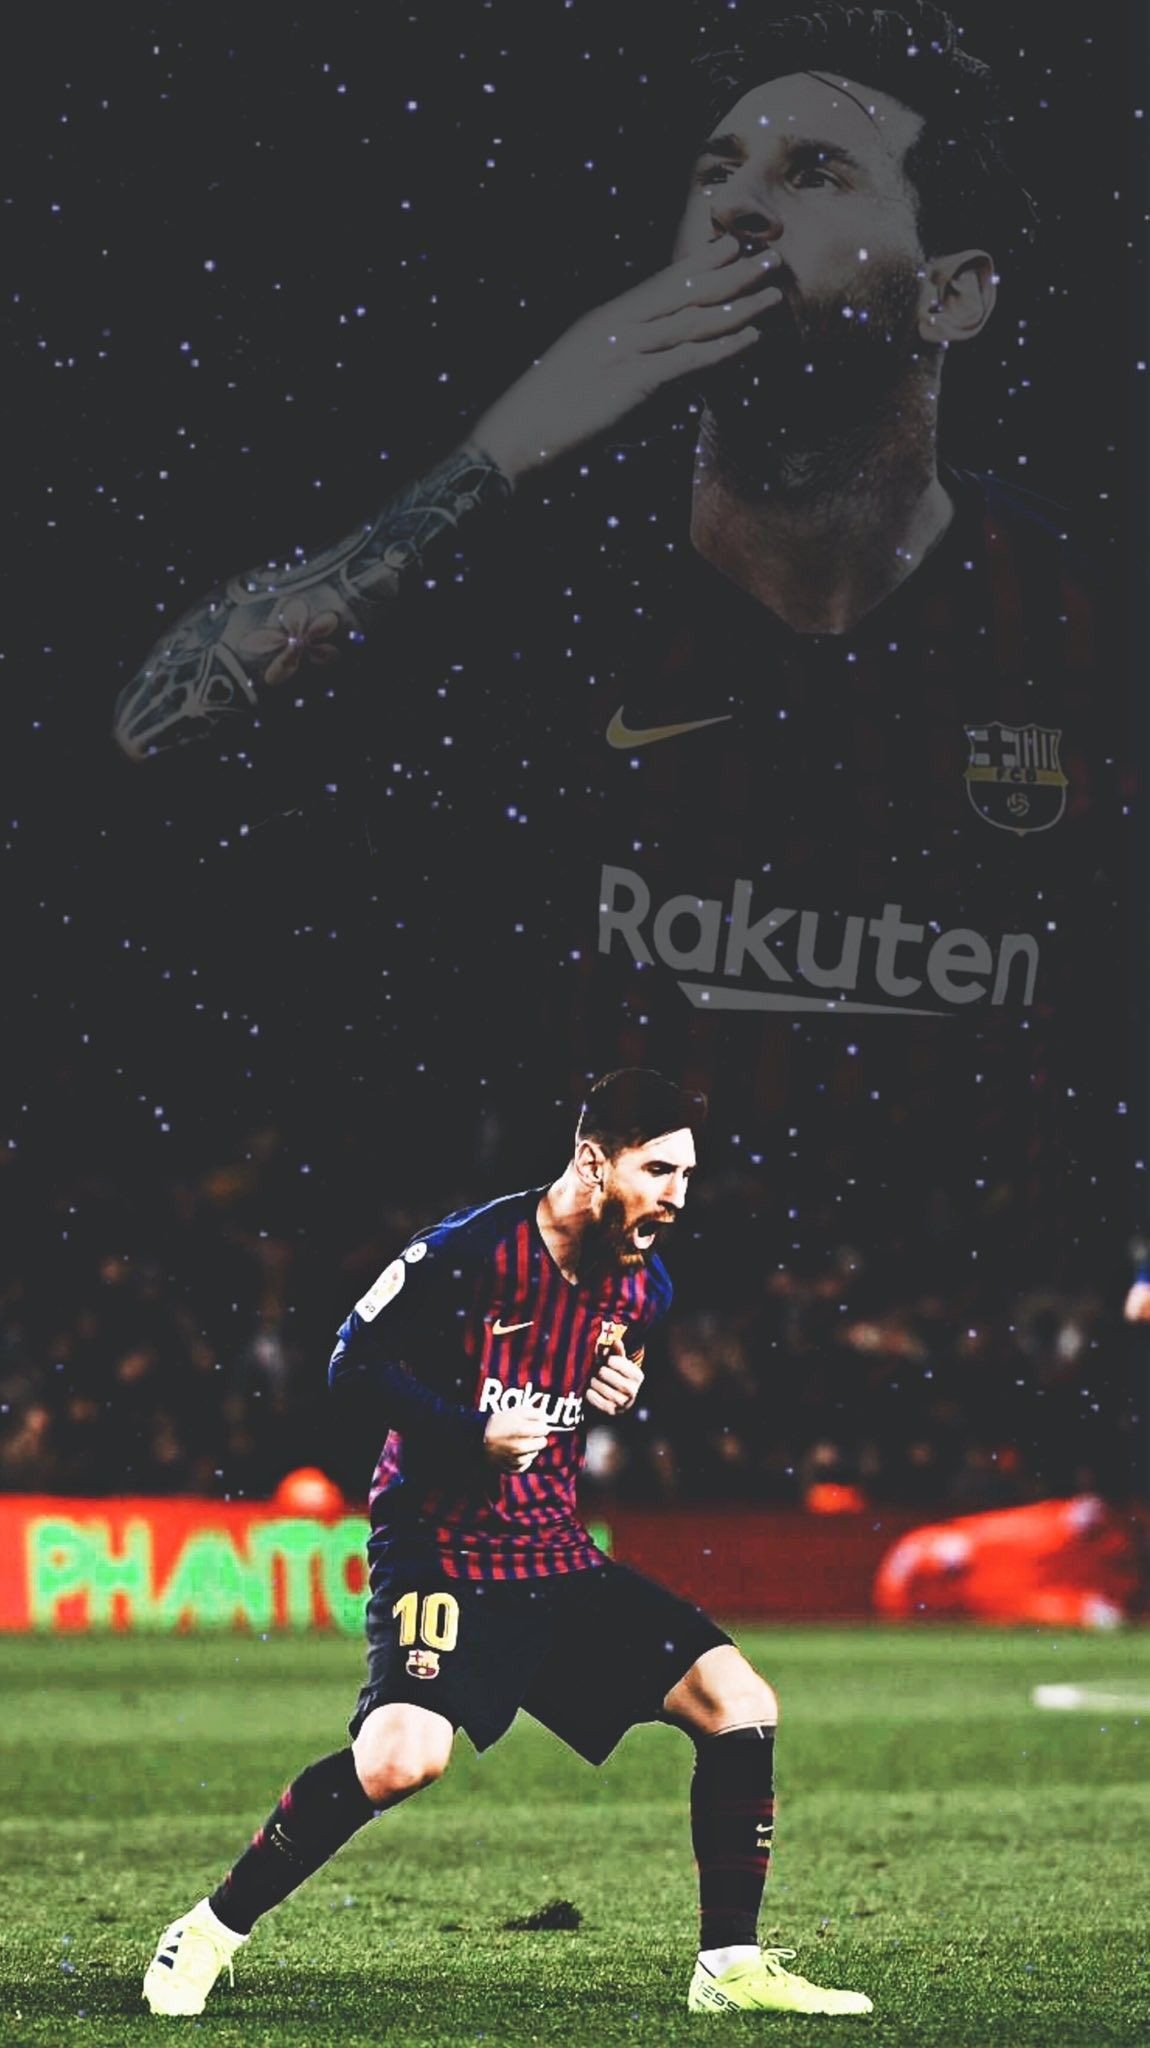 messi wallpaper for free download in hd